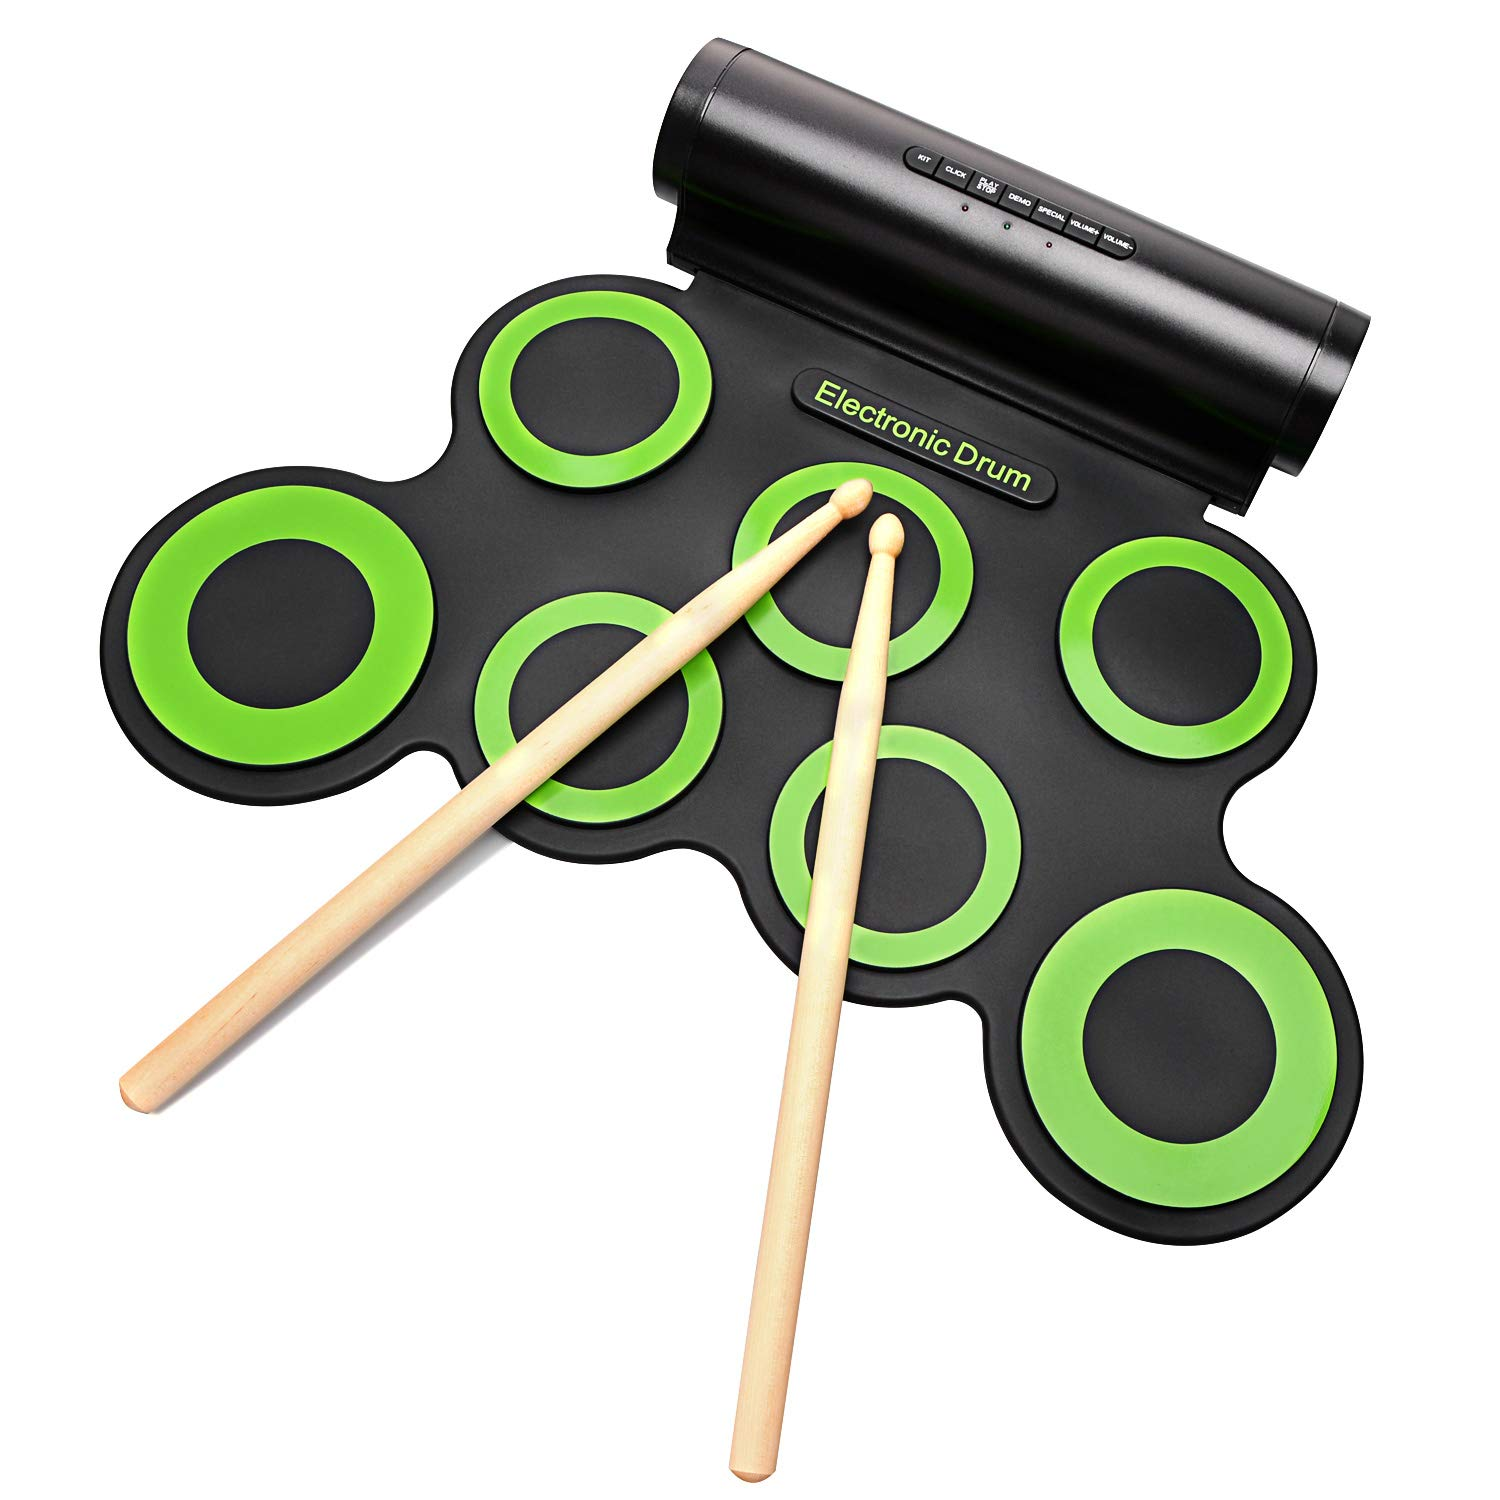 Electronic Drum Set Portable Electronic Drum Pad - Built-In Speaker (DC Powered) - Digital Roll-Up Touch 7 Labeled Pads and 2 Foot Pedals Midi Drum Up to 10H Playing Time Holiday for Kids Children Beginners by roboller